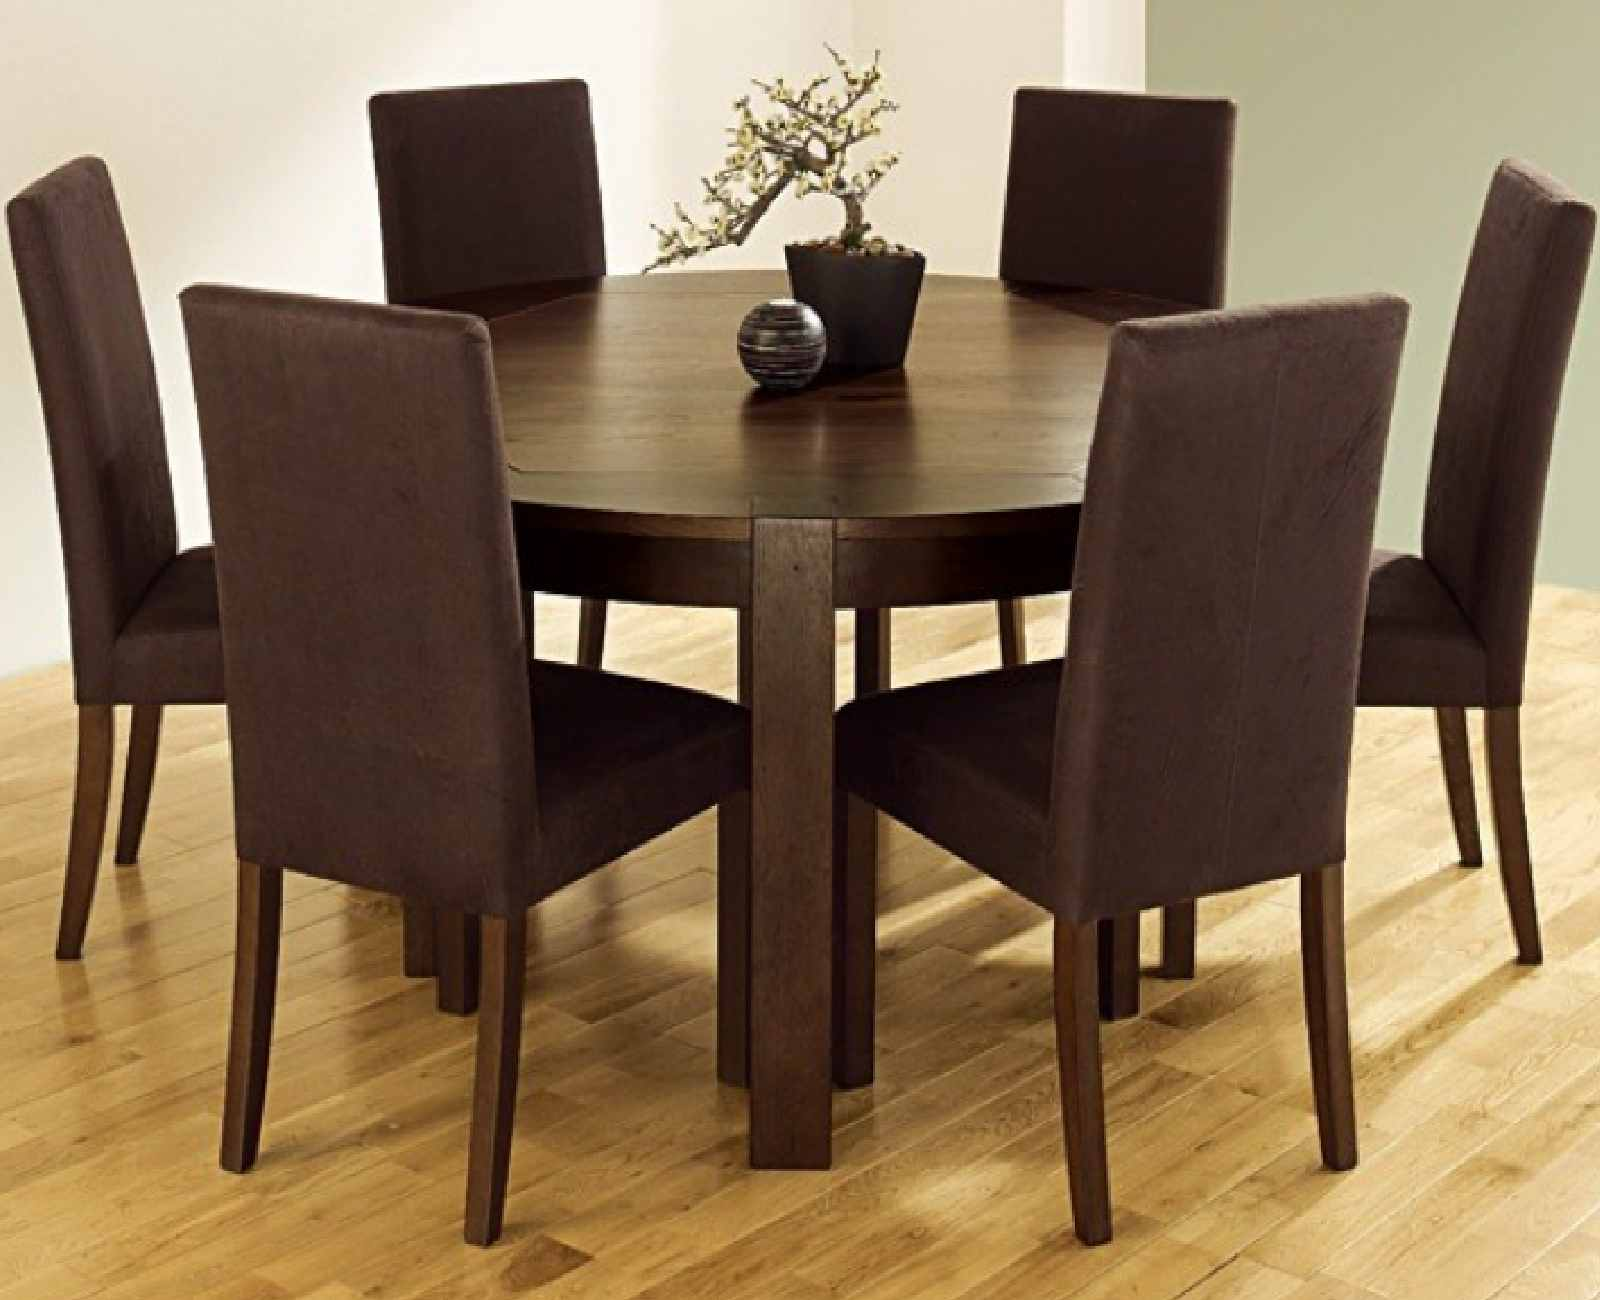 Dining Room Round Table For 6 With Design Simple How To